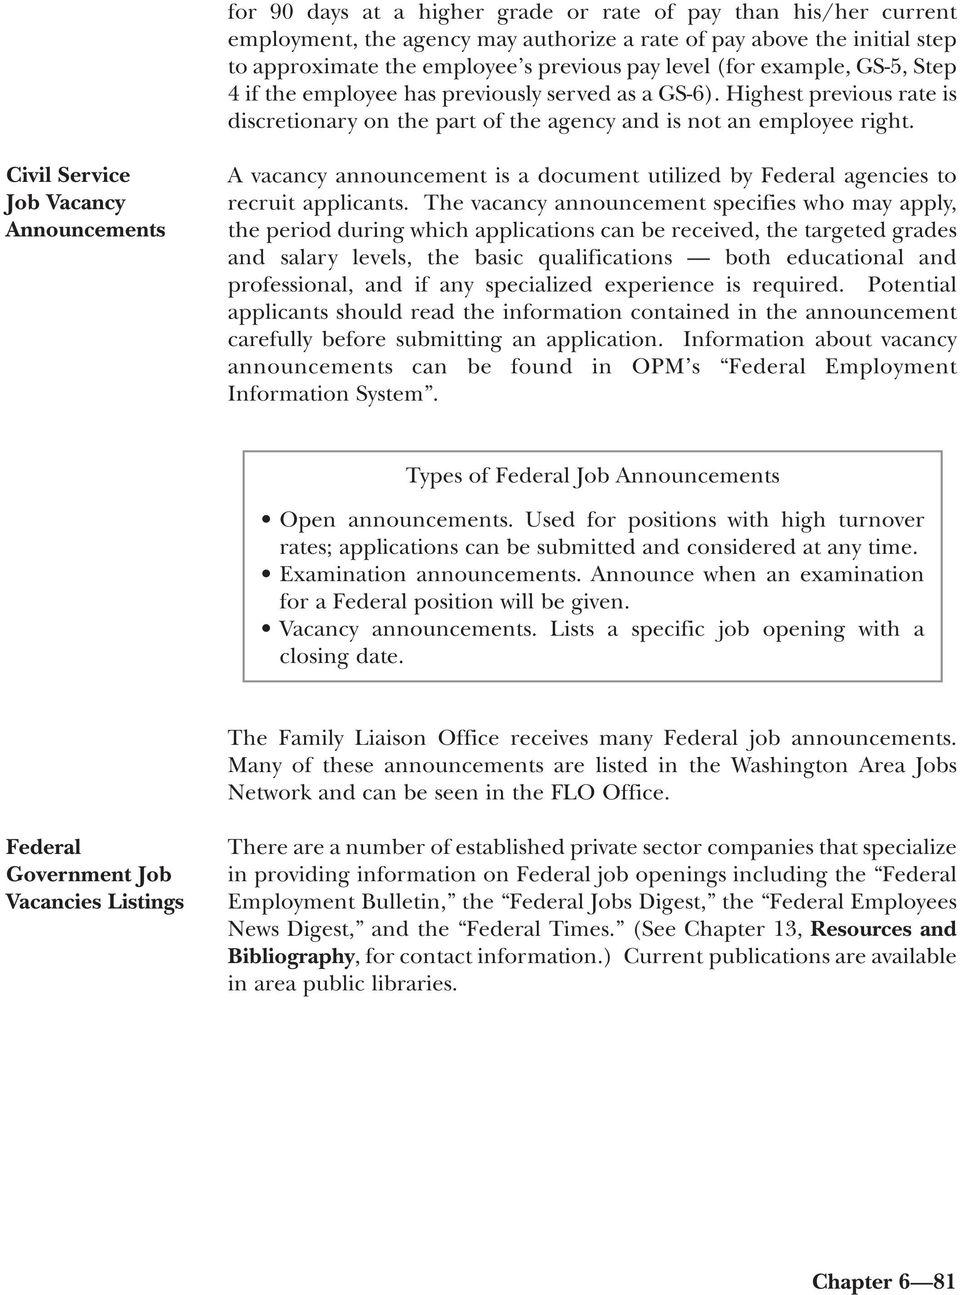 Federal Government Employment - PDF